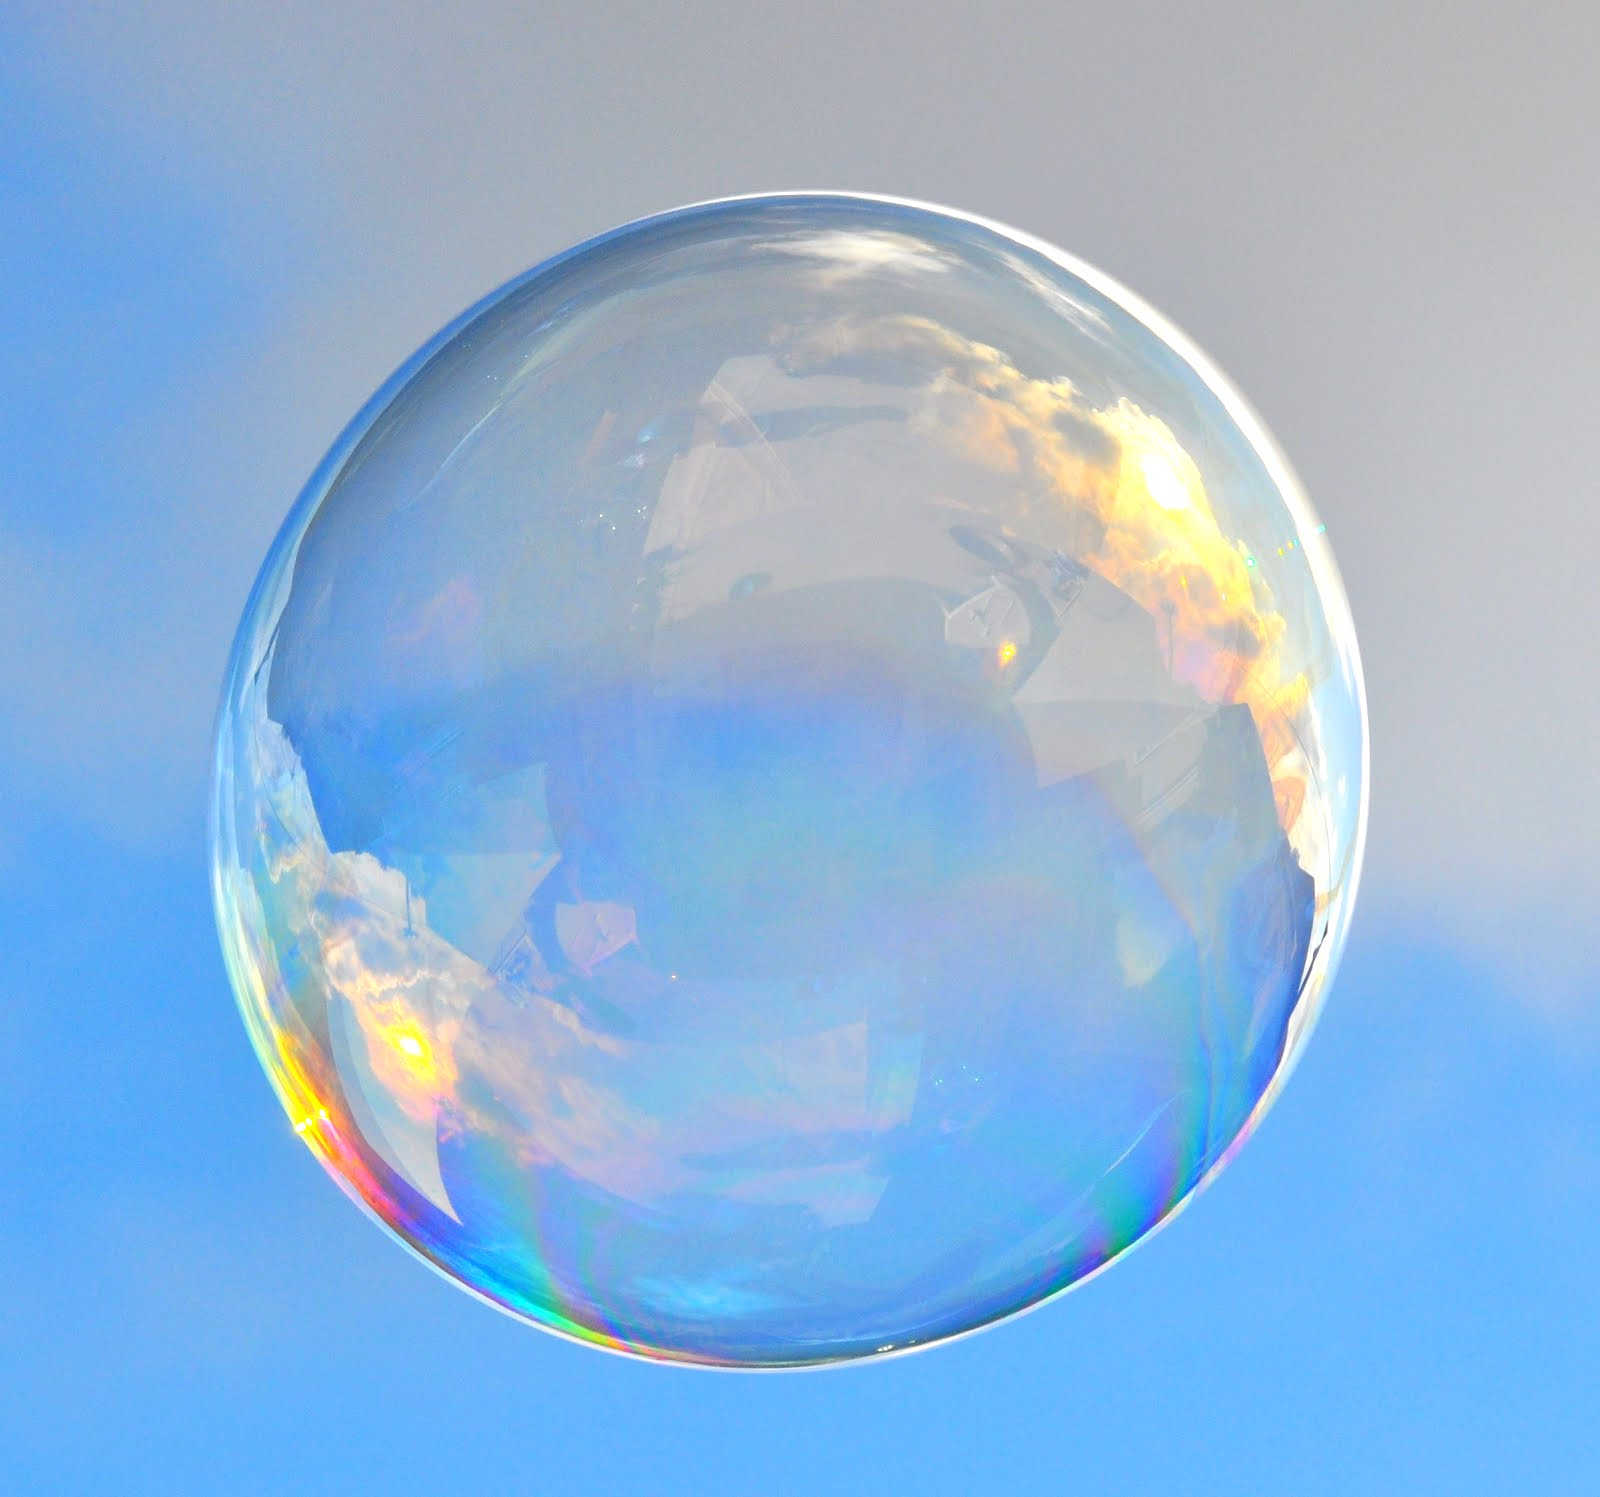 Is This A Bubble